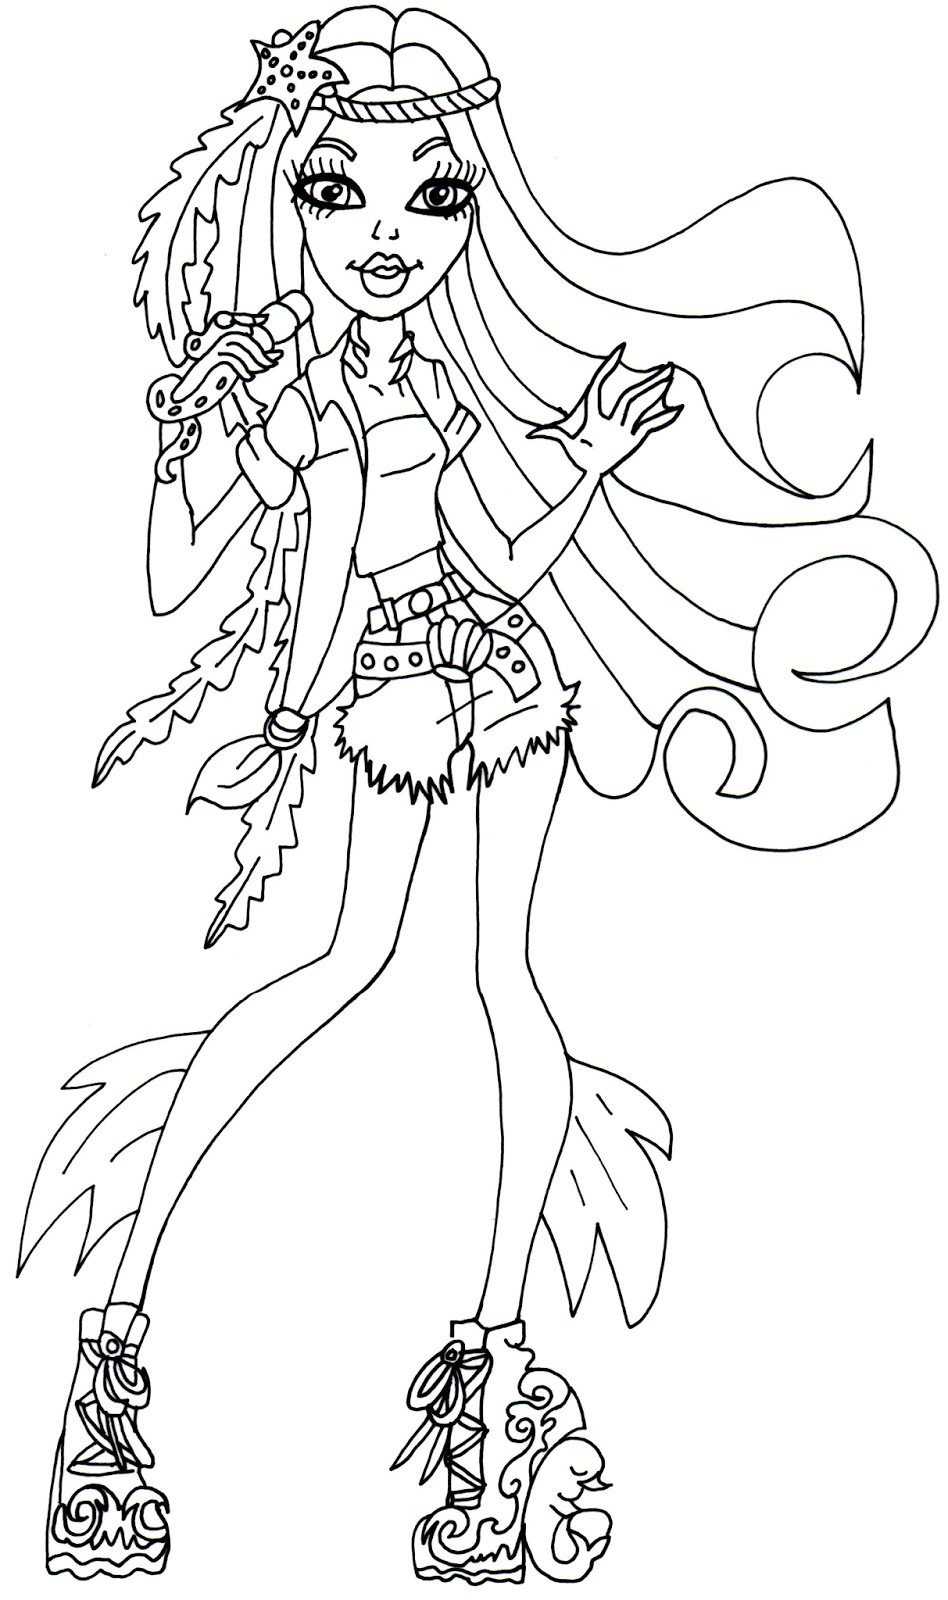 Monster High Free Printables | Madison Fear Monster High Coloring - Monster High Free Printable Pictures